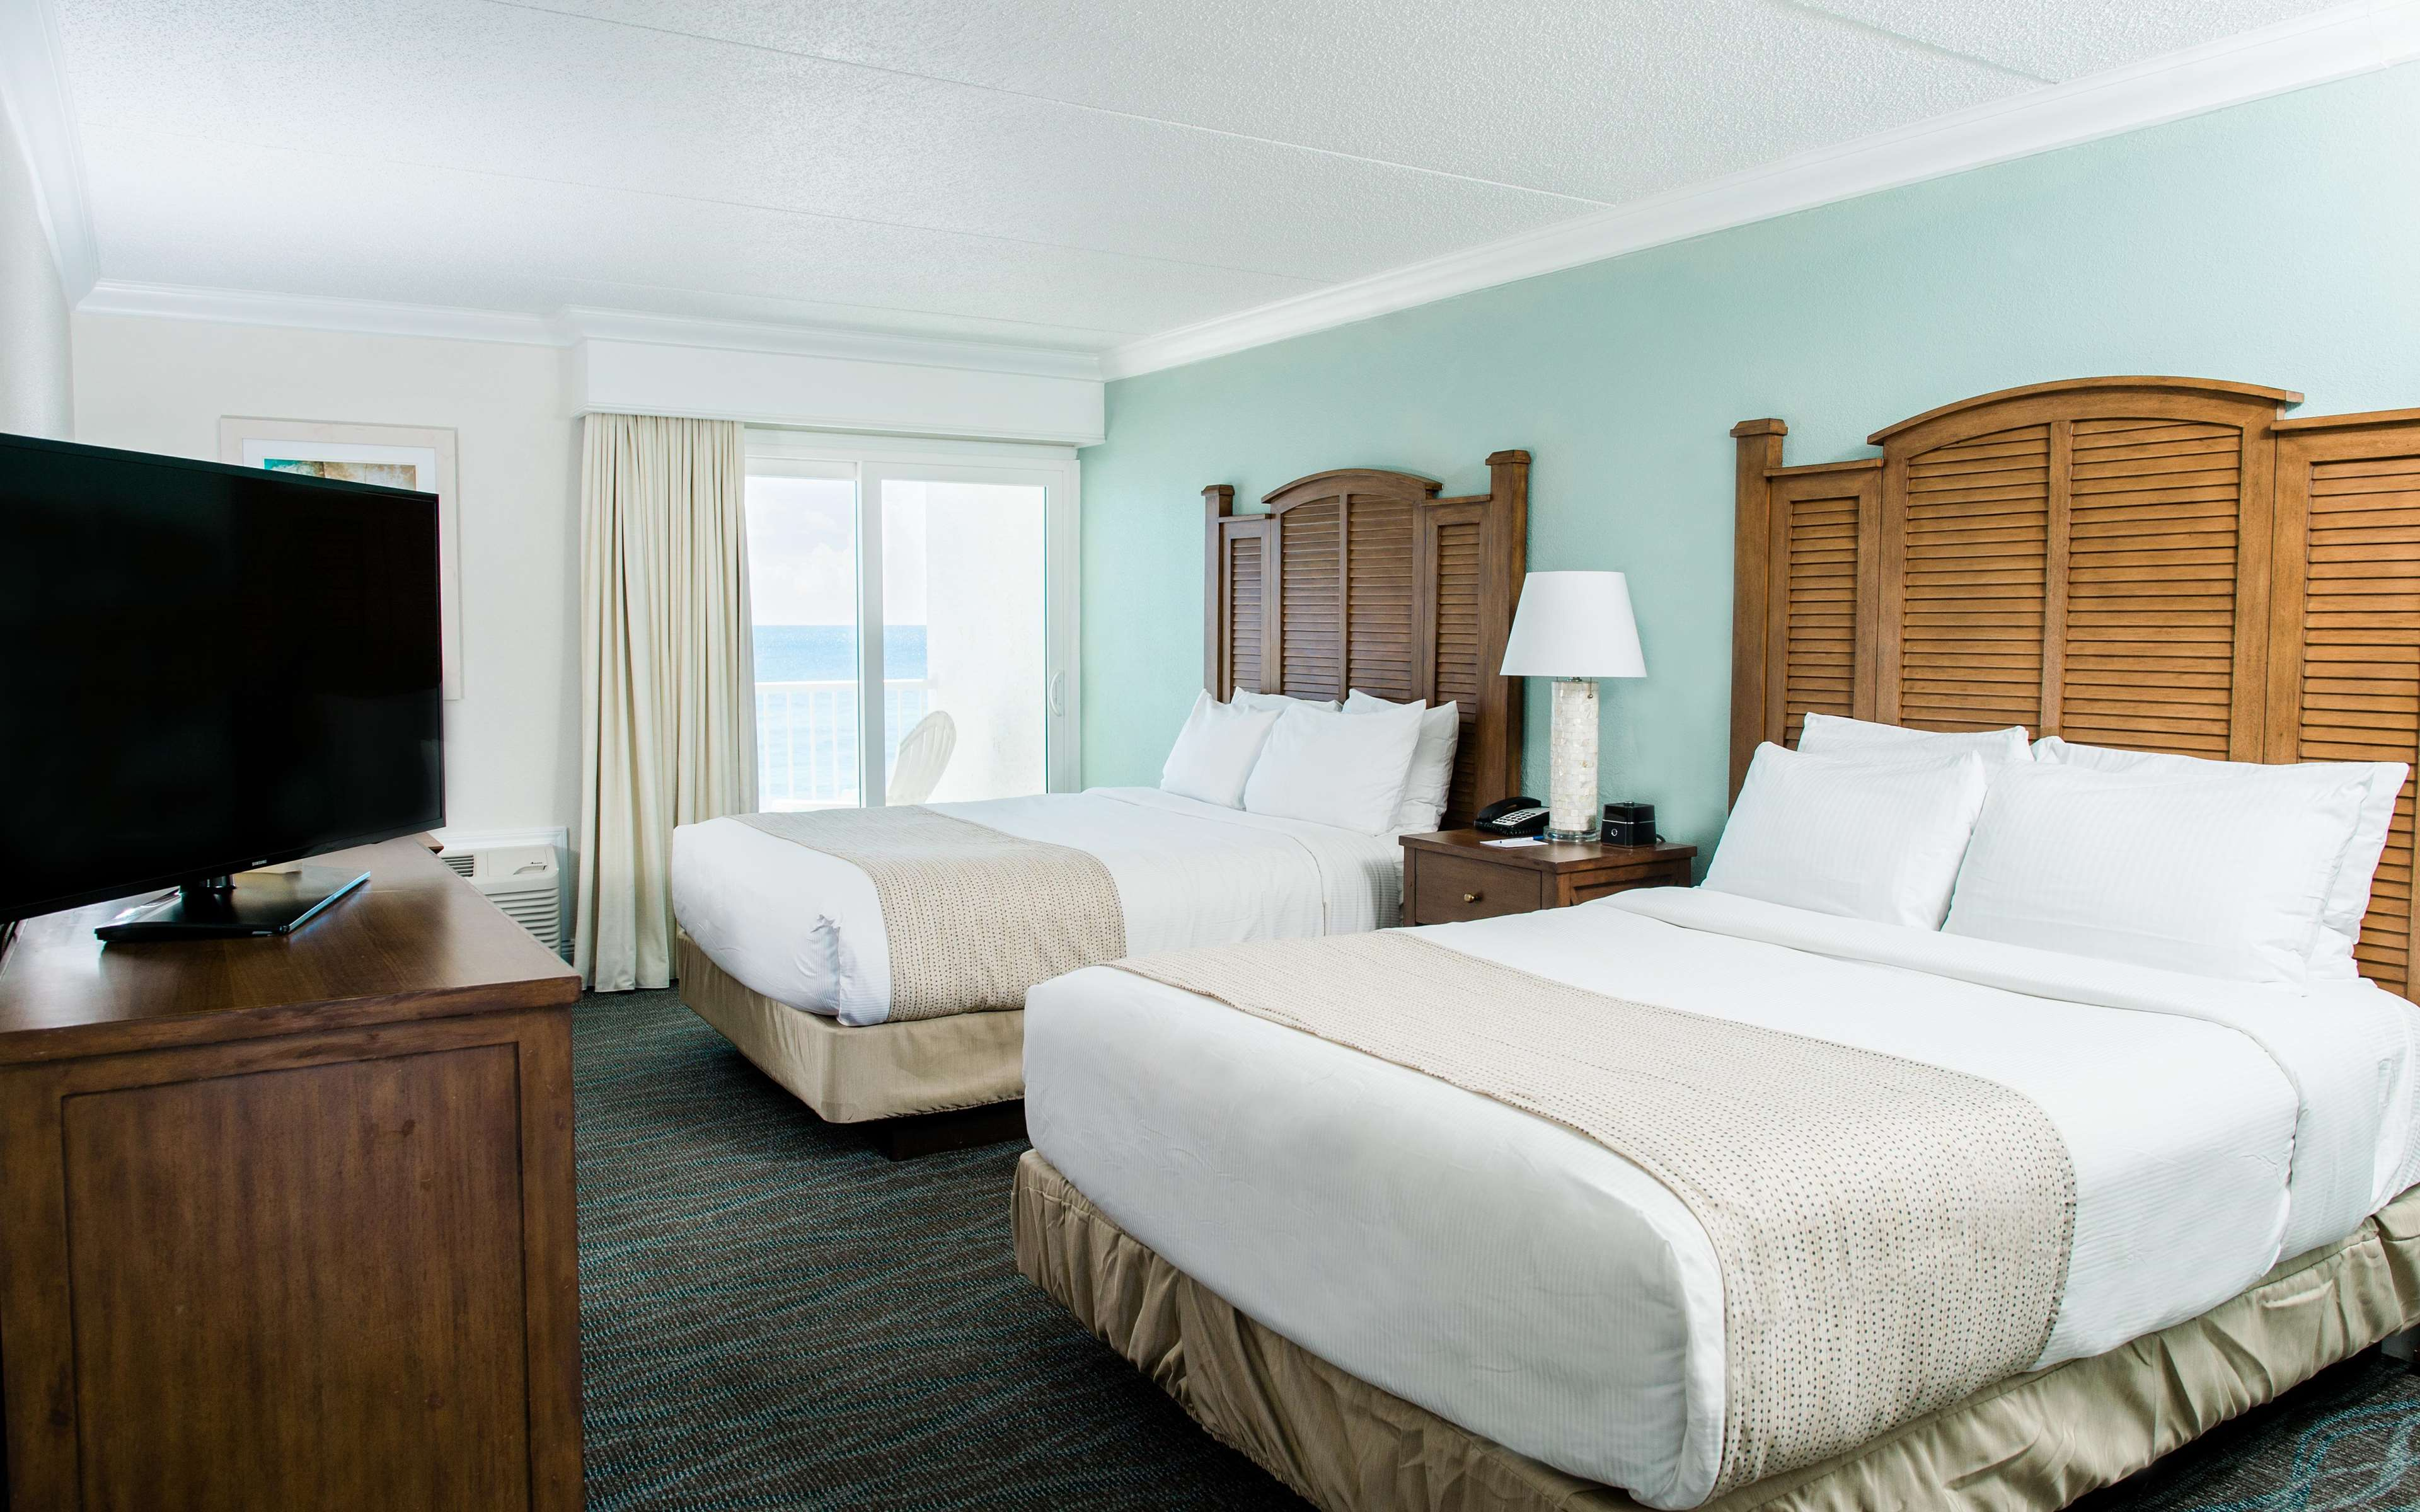 Best Western on the Beach image 14